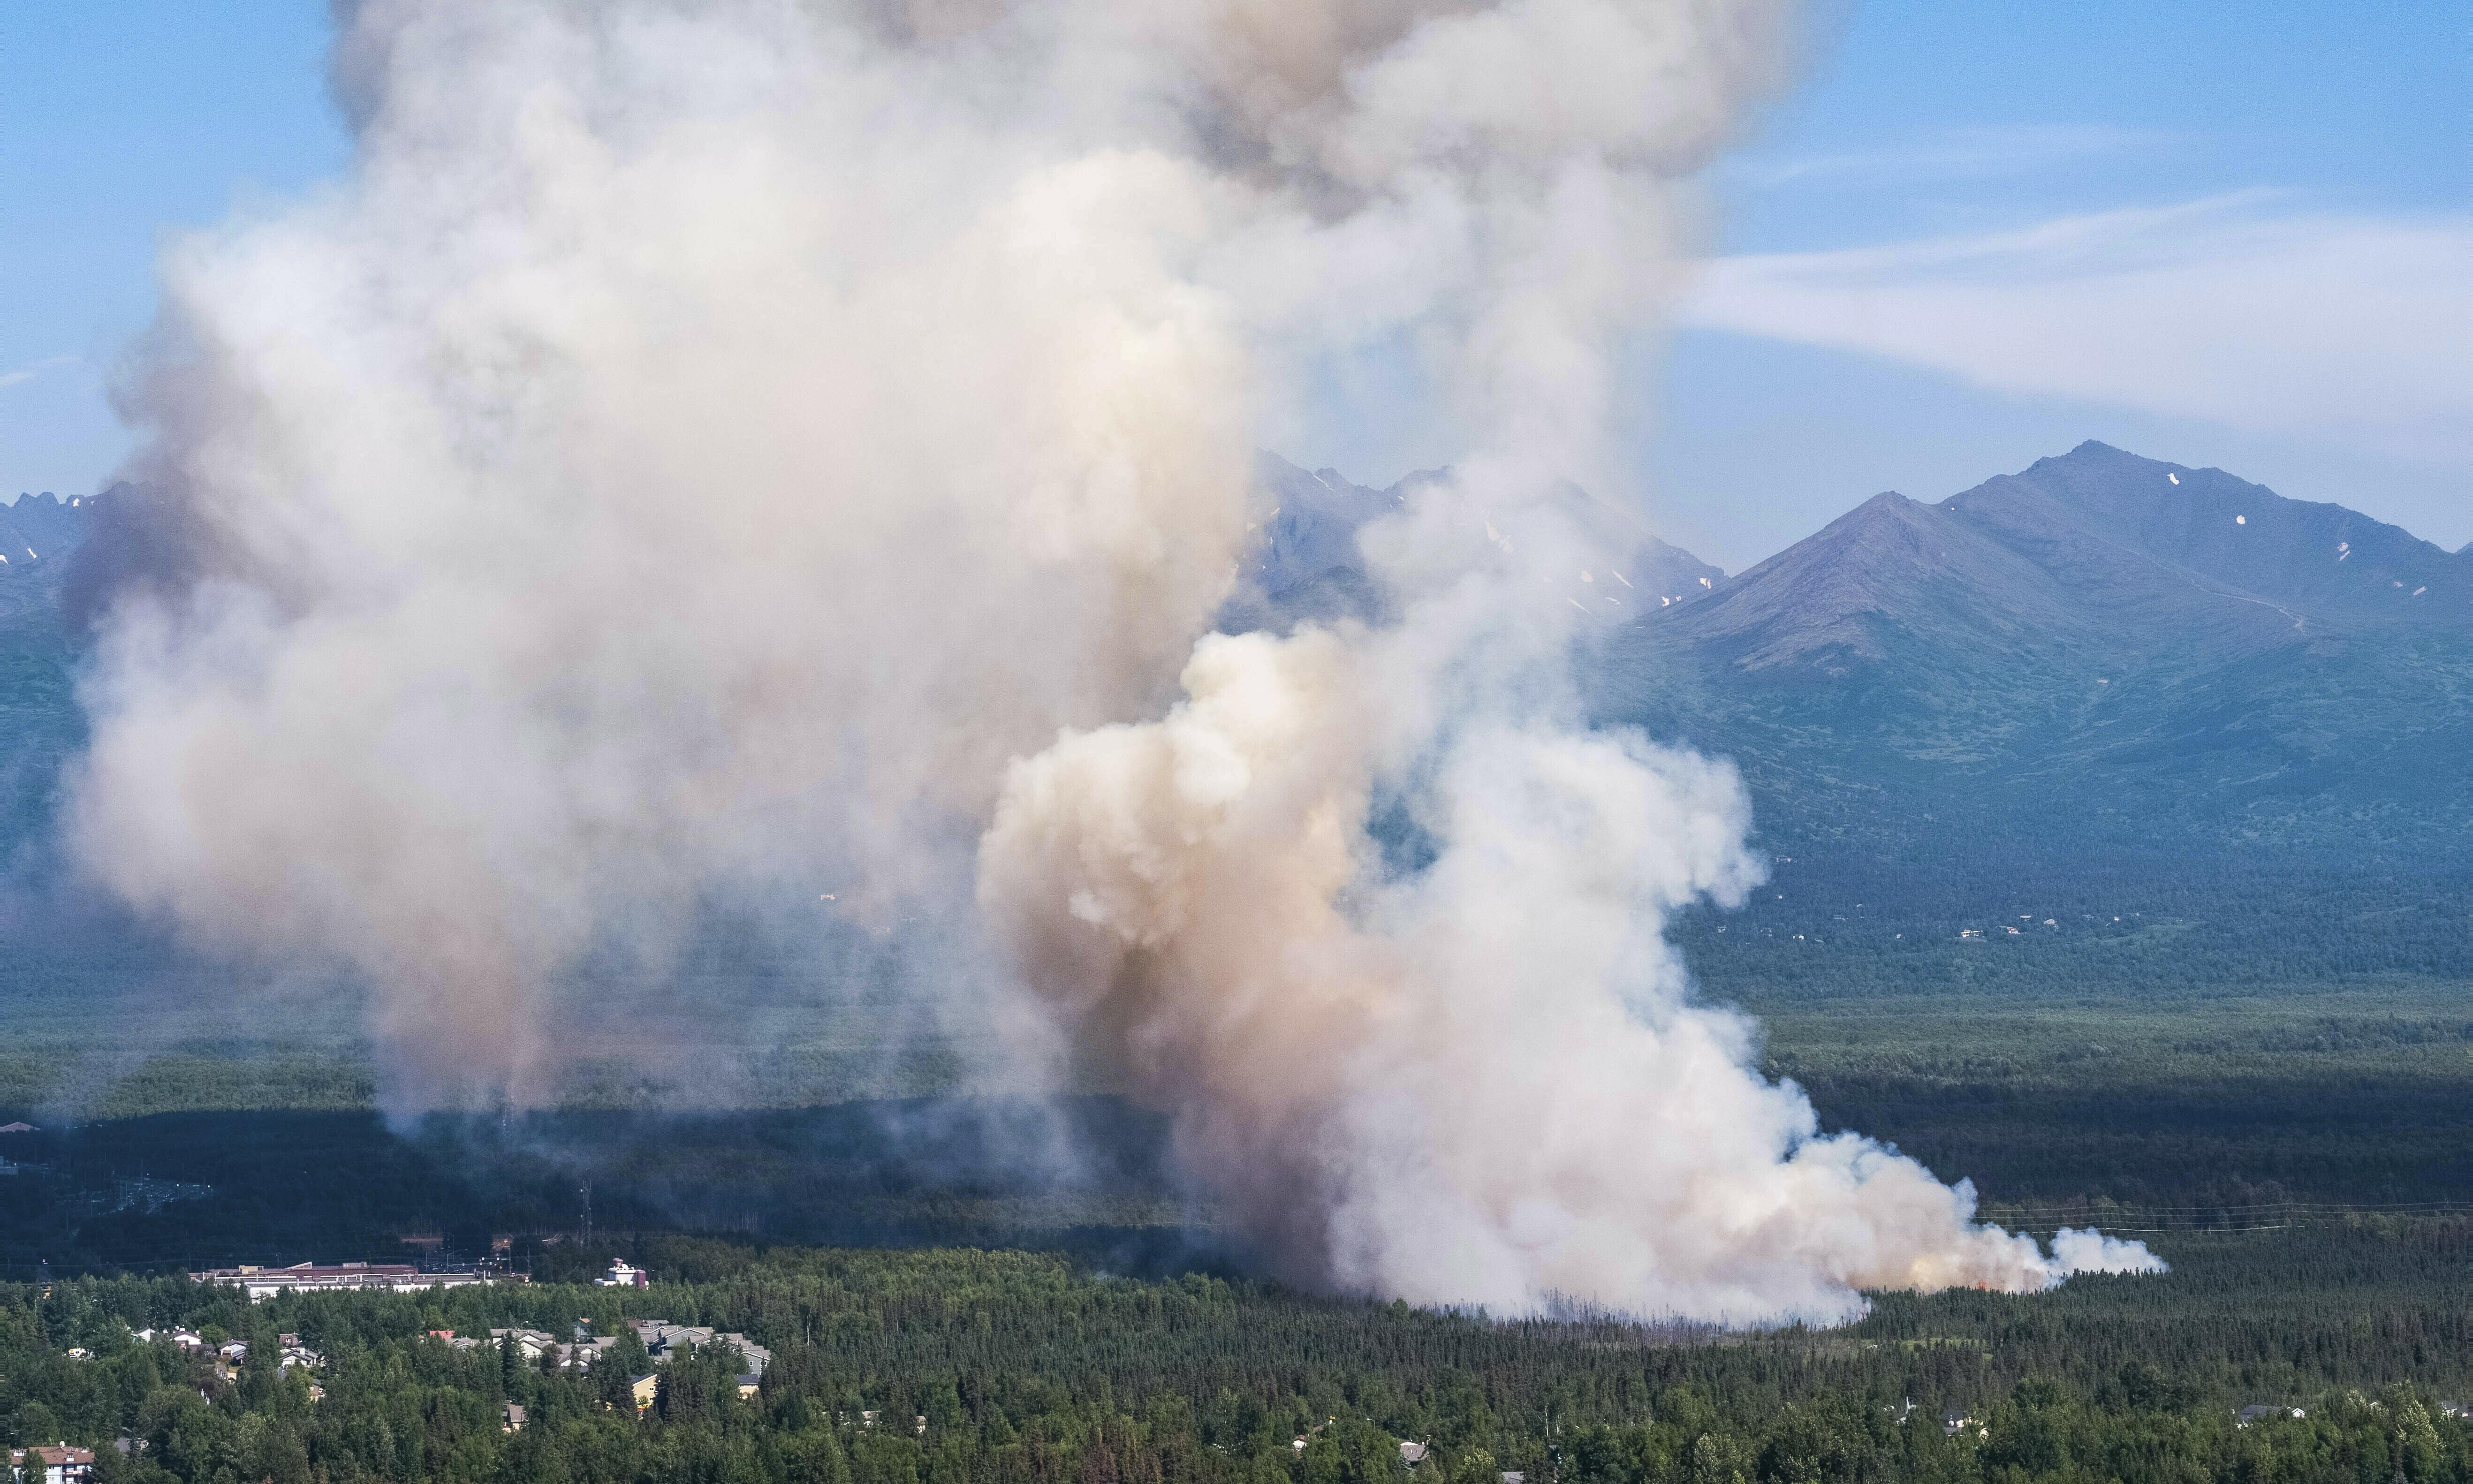 'There is no silver lining': why Alaska fires are a glimpse of our climate future